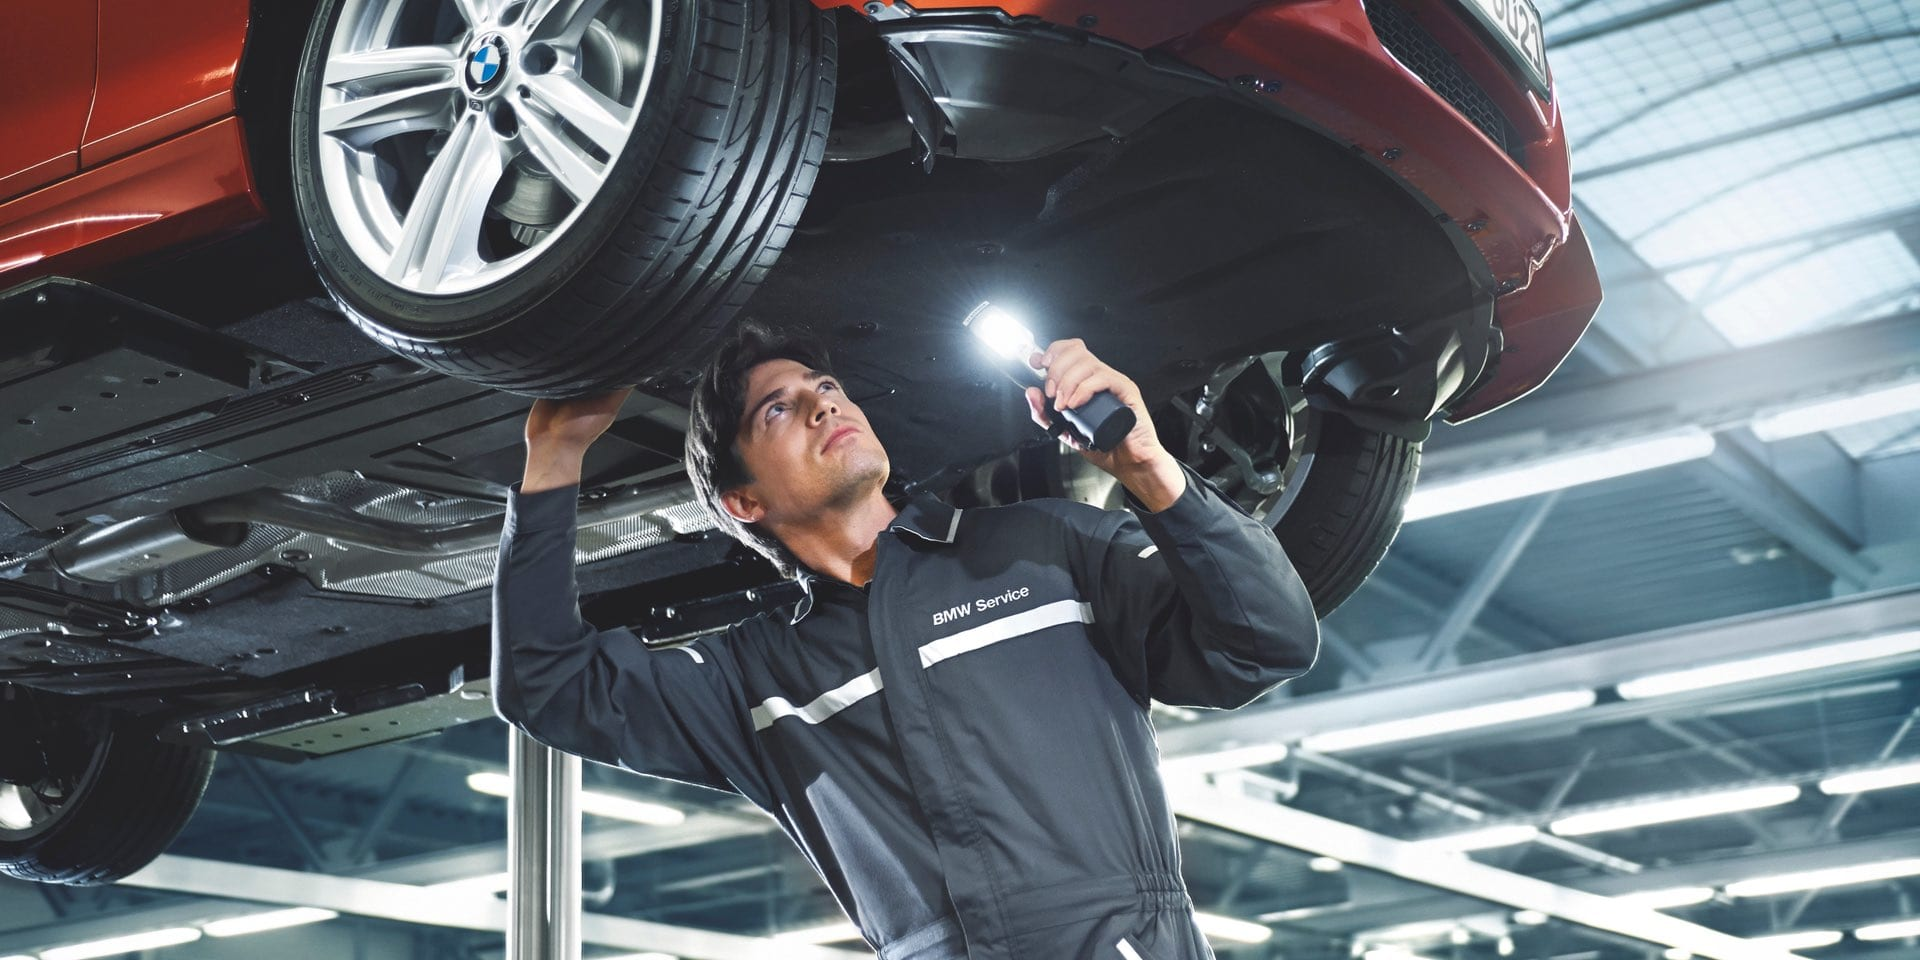 BMW_AfterSales_Design_Services_fma-2x